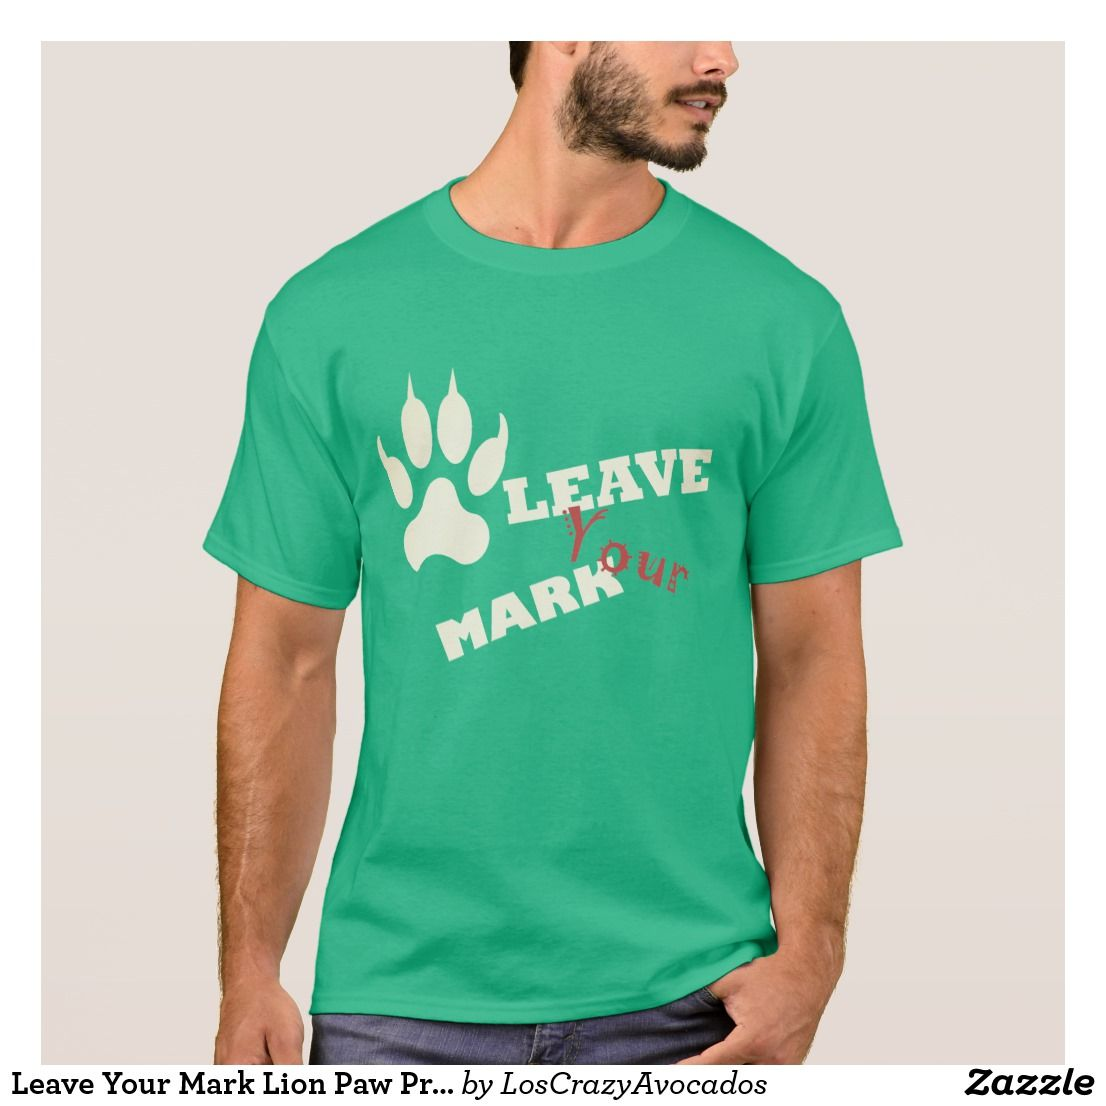 leave your mark lion paw print t shirt in 2018 cool male outfits